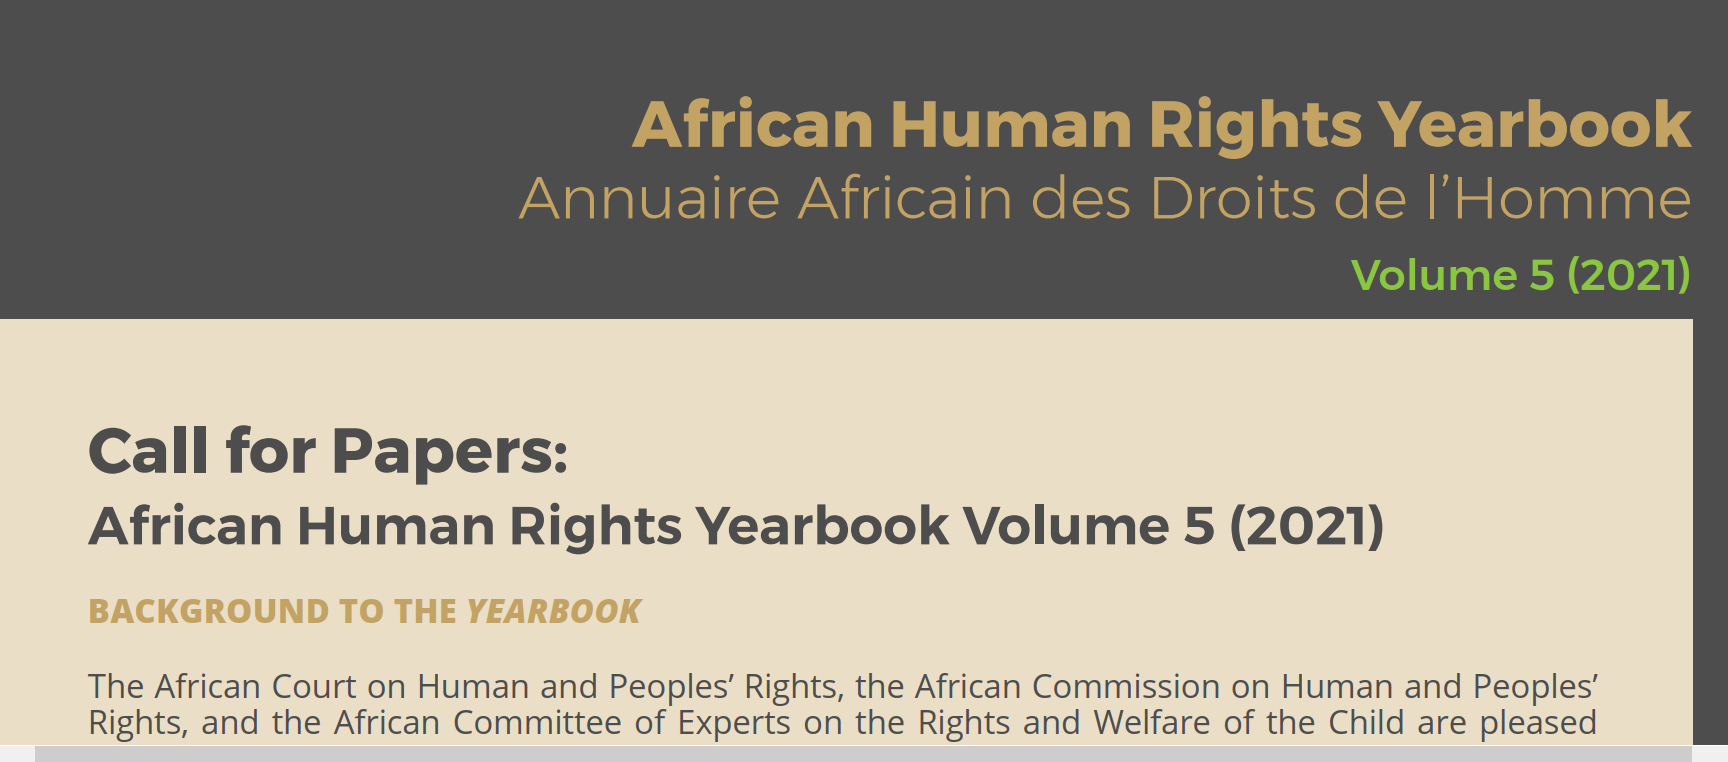 CALL FOR PAPERS: AFRICAN HUMAN RIGHTS YEARBOOK VOLUME 5 (2021)